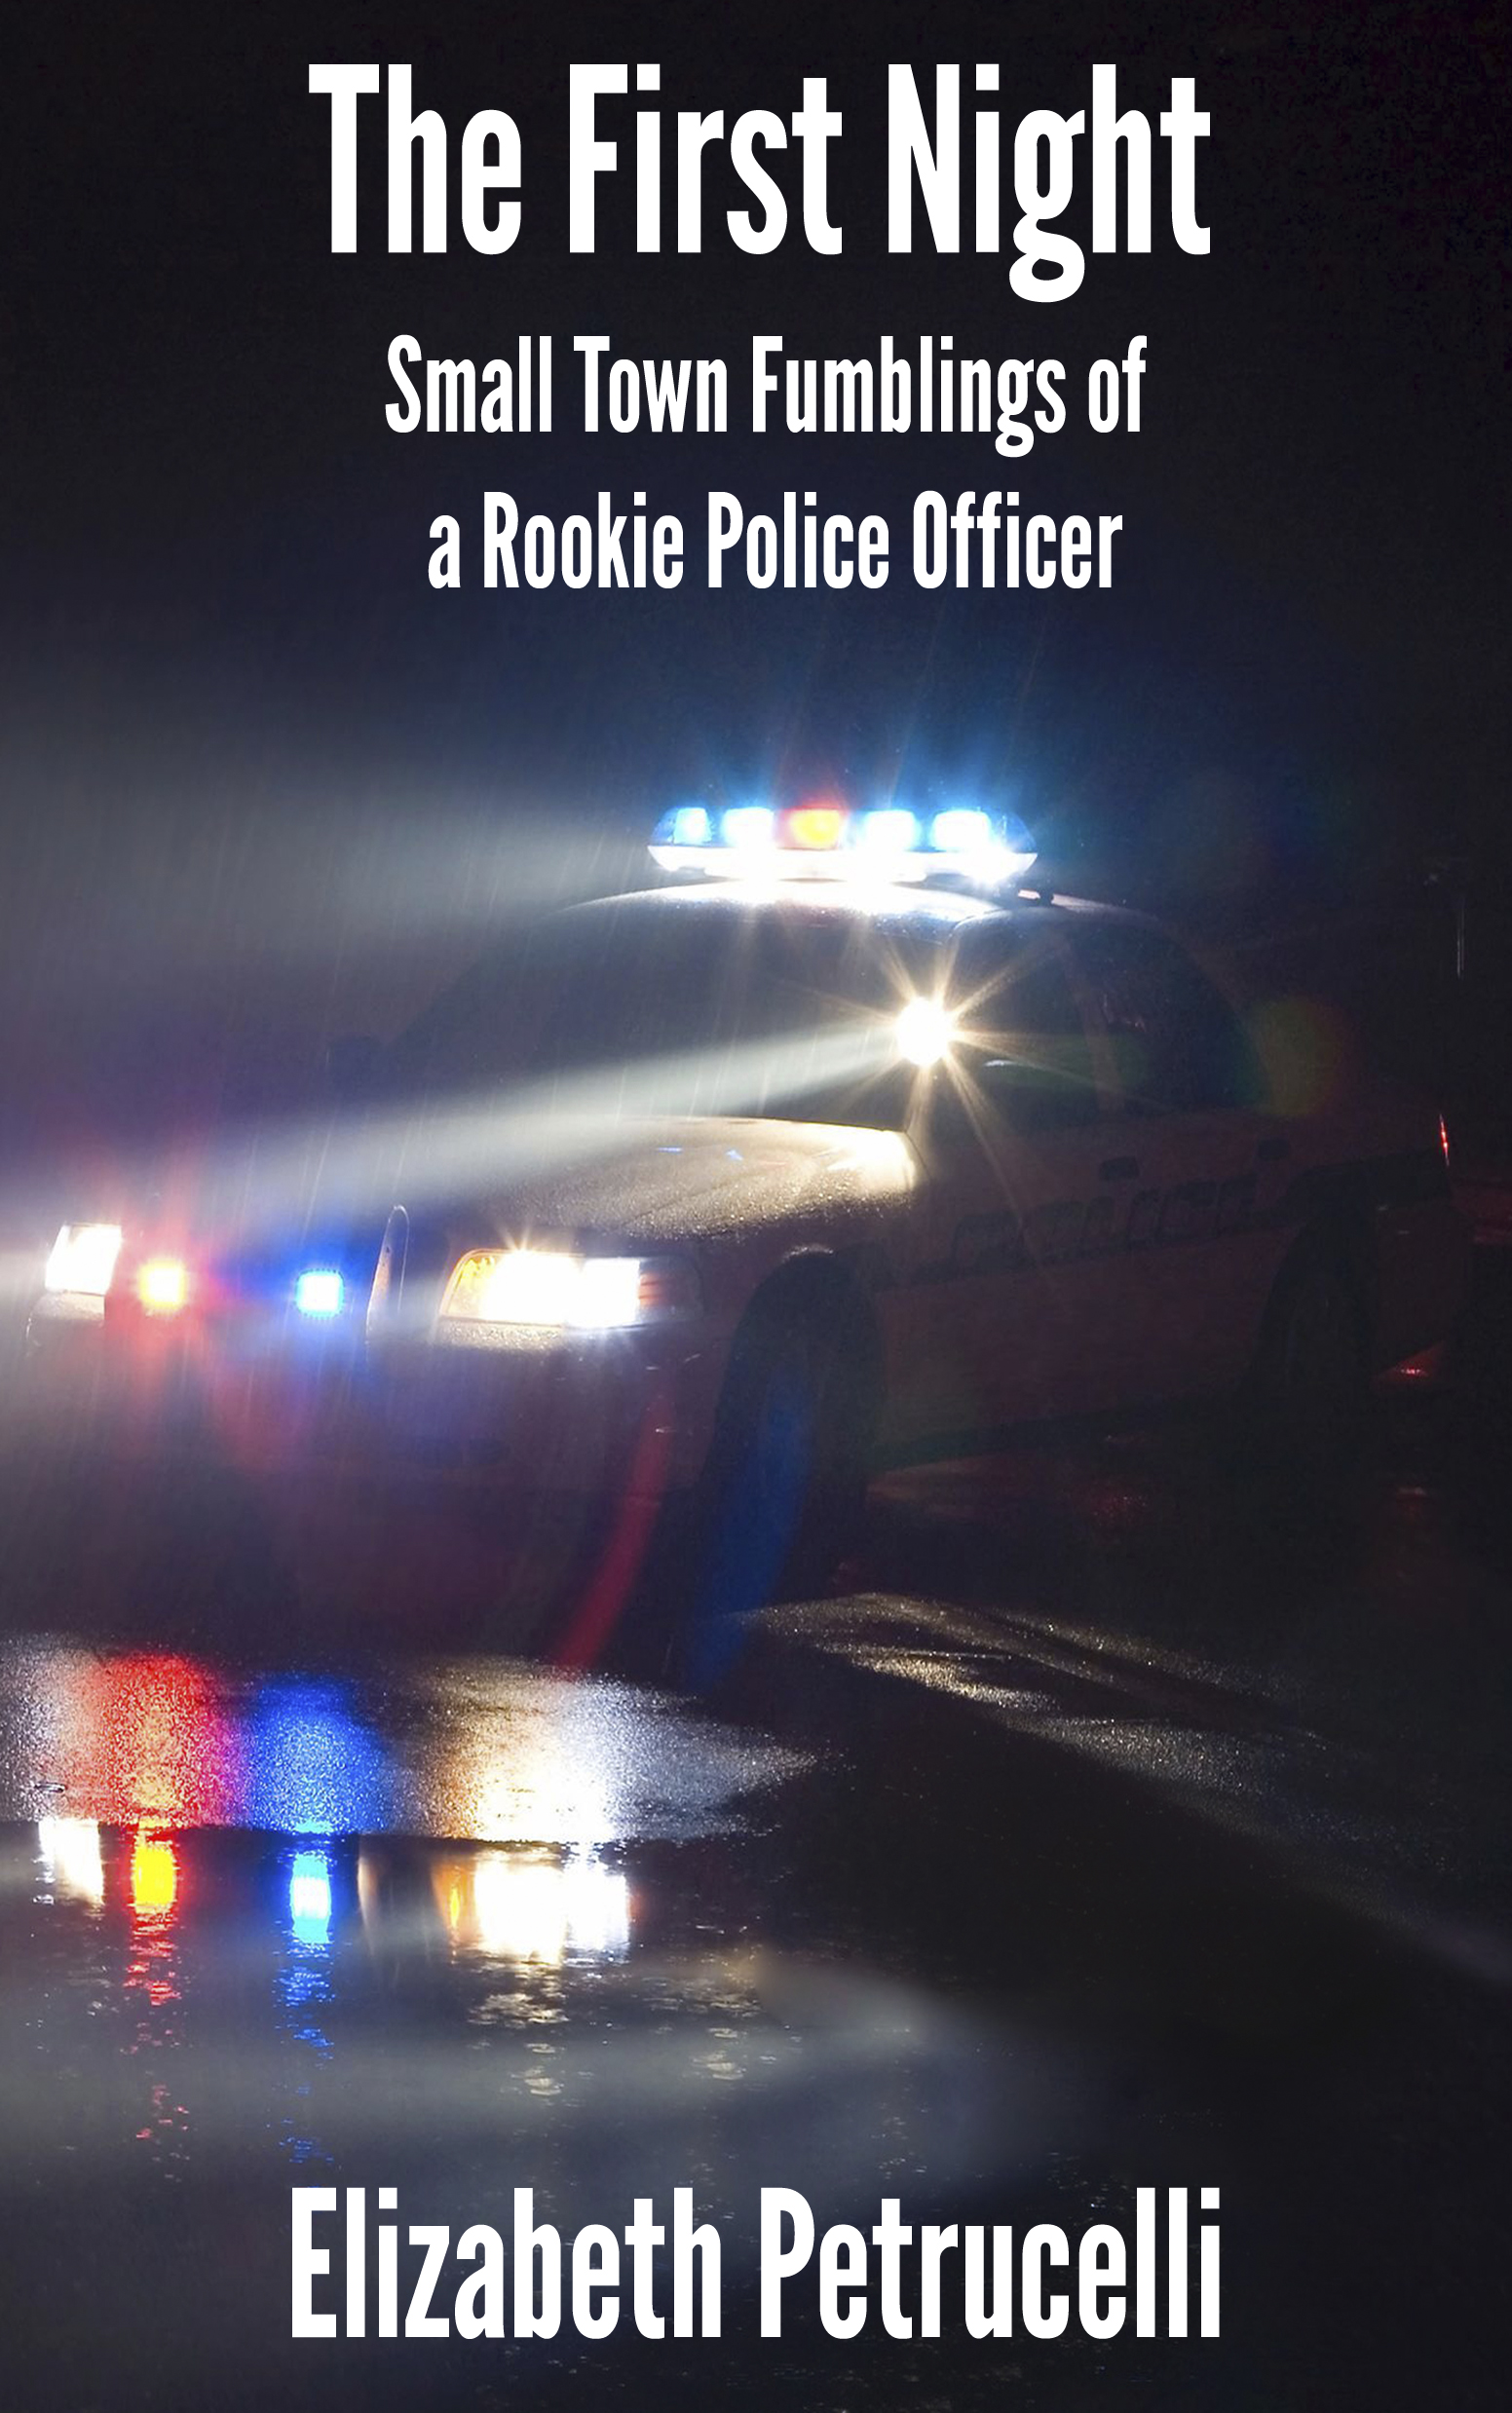 The First Night; Small Town Fumblings of a Rookie Police Officer